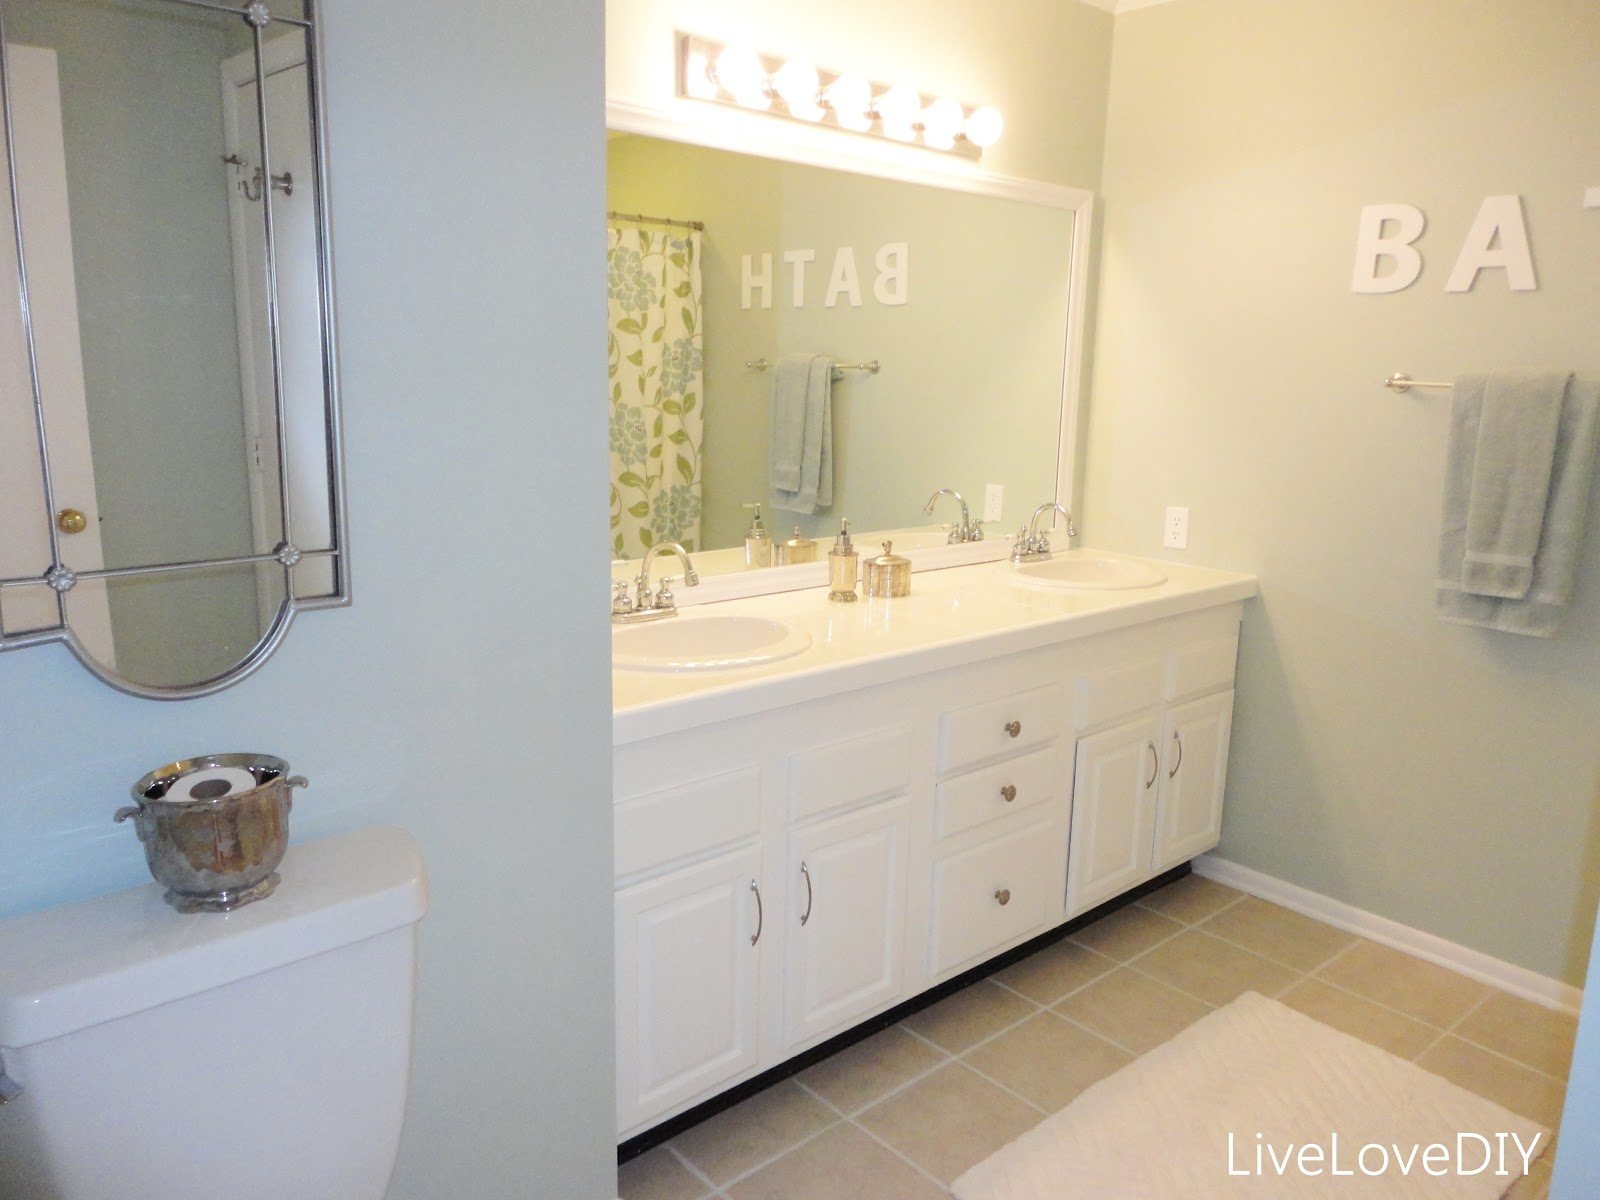 Updating a small master bathroom